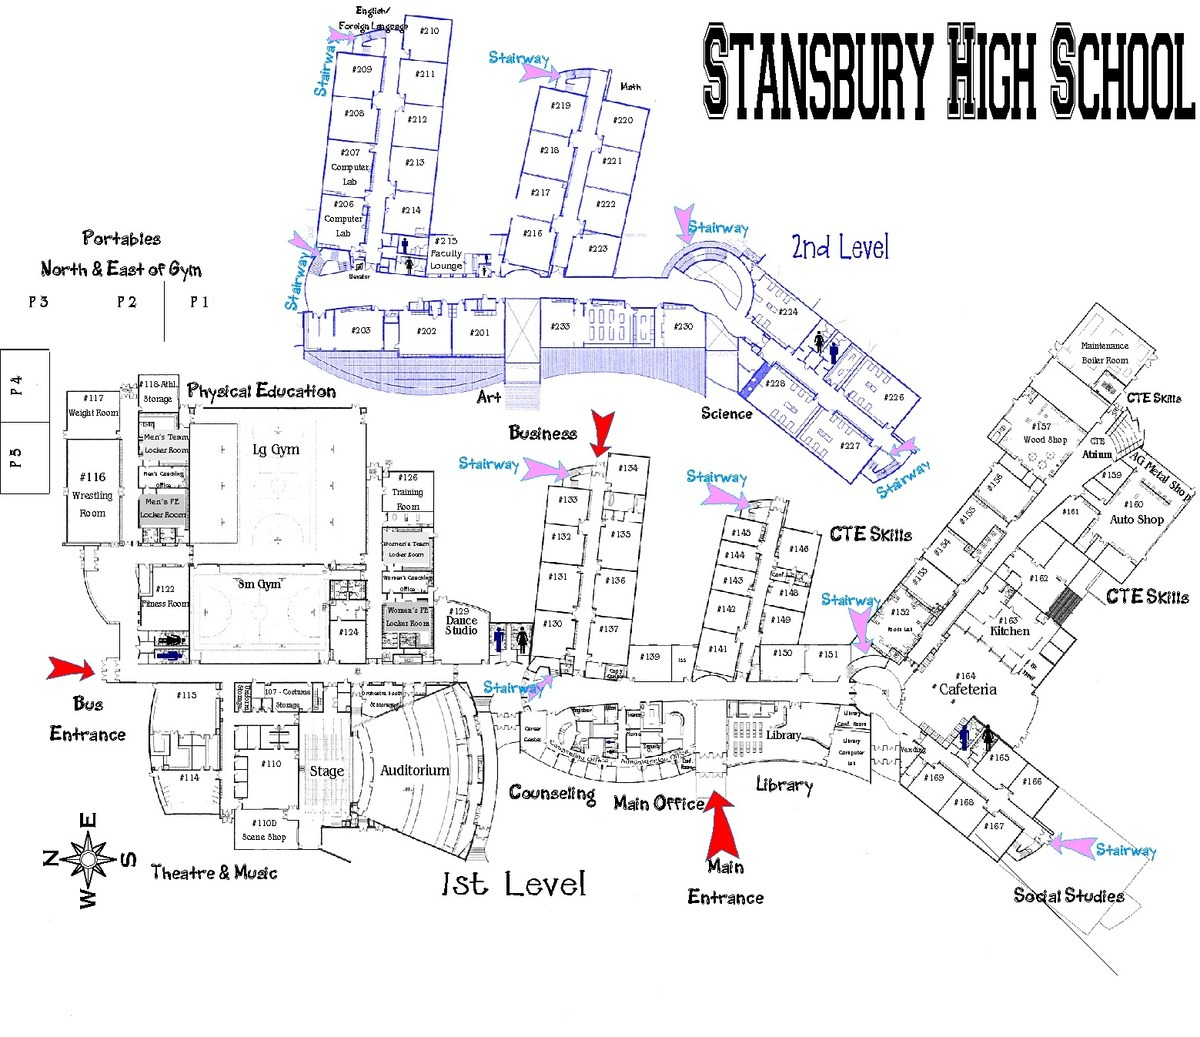 School Campus Map.Campus Map About Us Stansbury High School